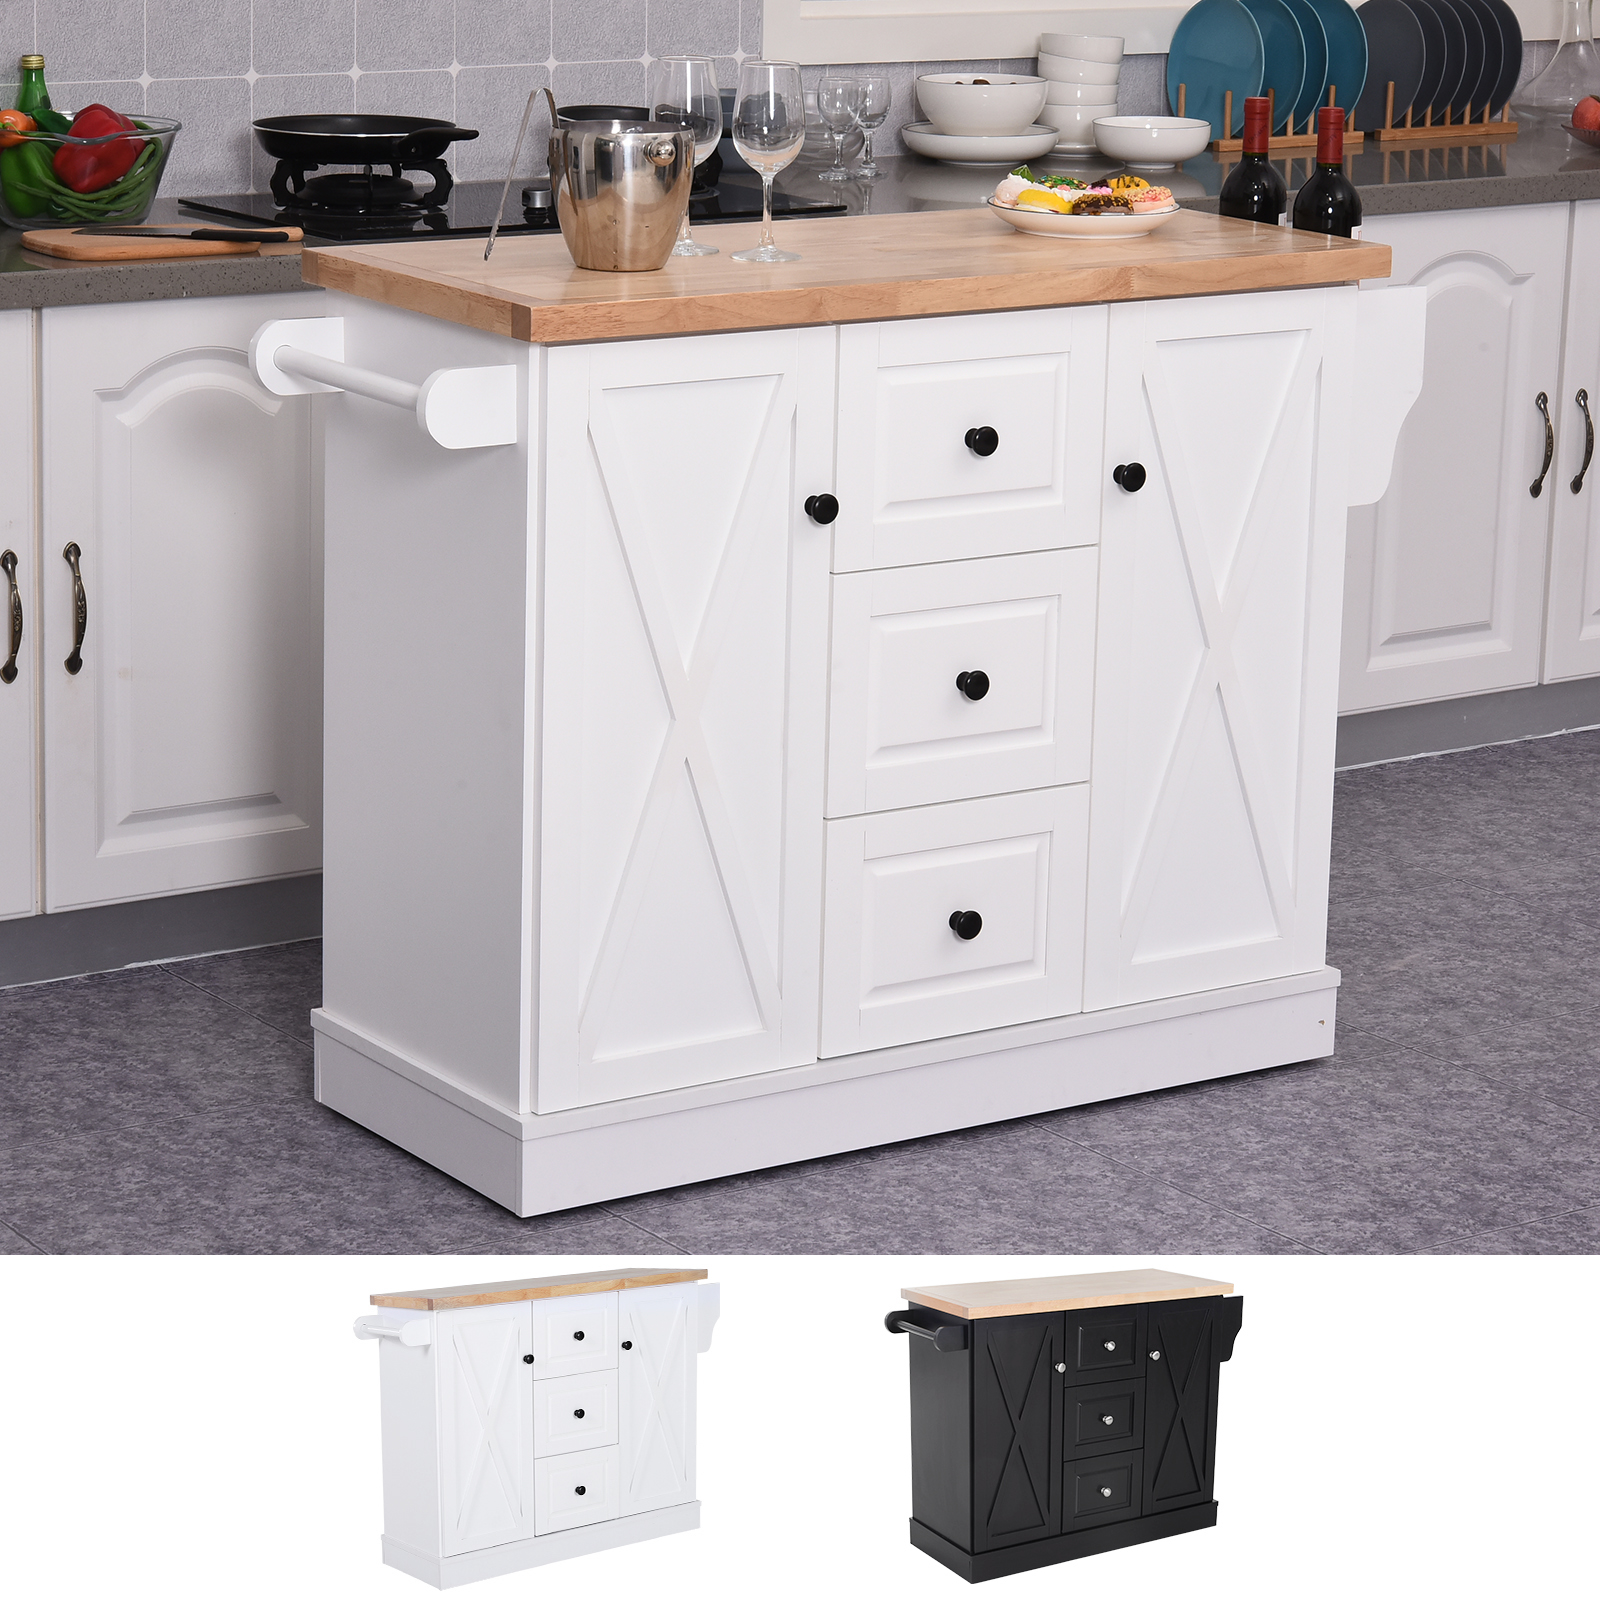 Details about Portable Rolling Kitchen Island Cart with Spice Rack and  Towel Rack Wood